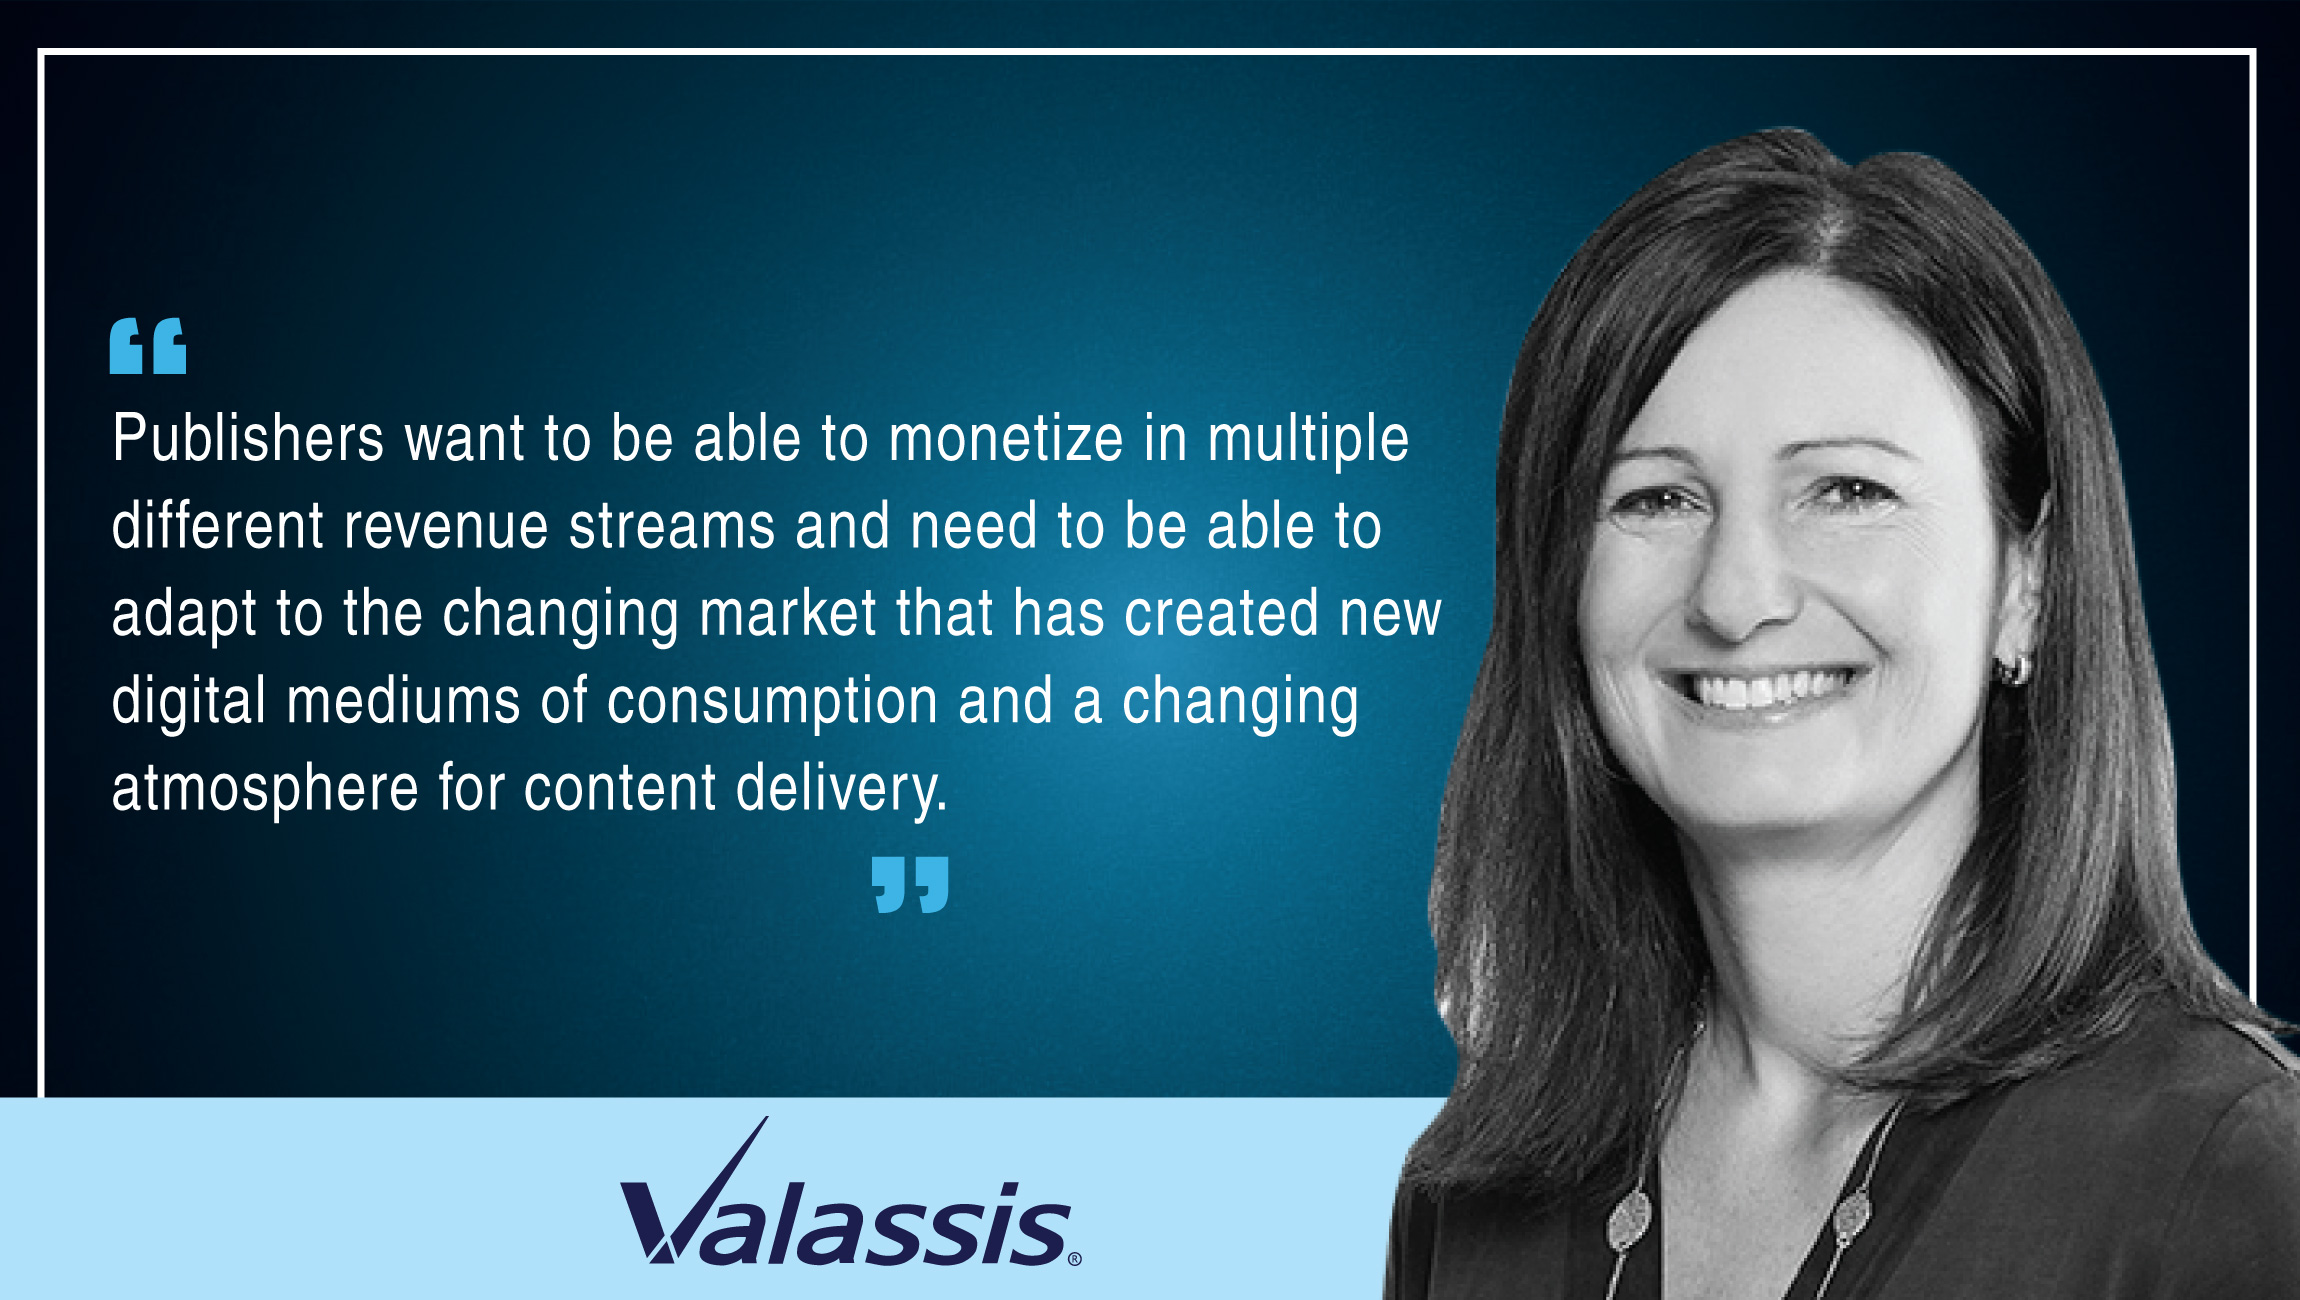 TechBytes with Michelle Engle, SVP of Marketing at Valassis